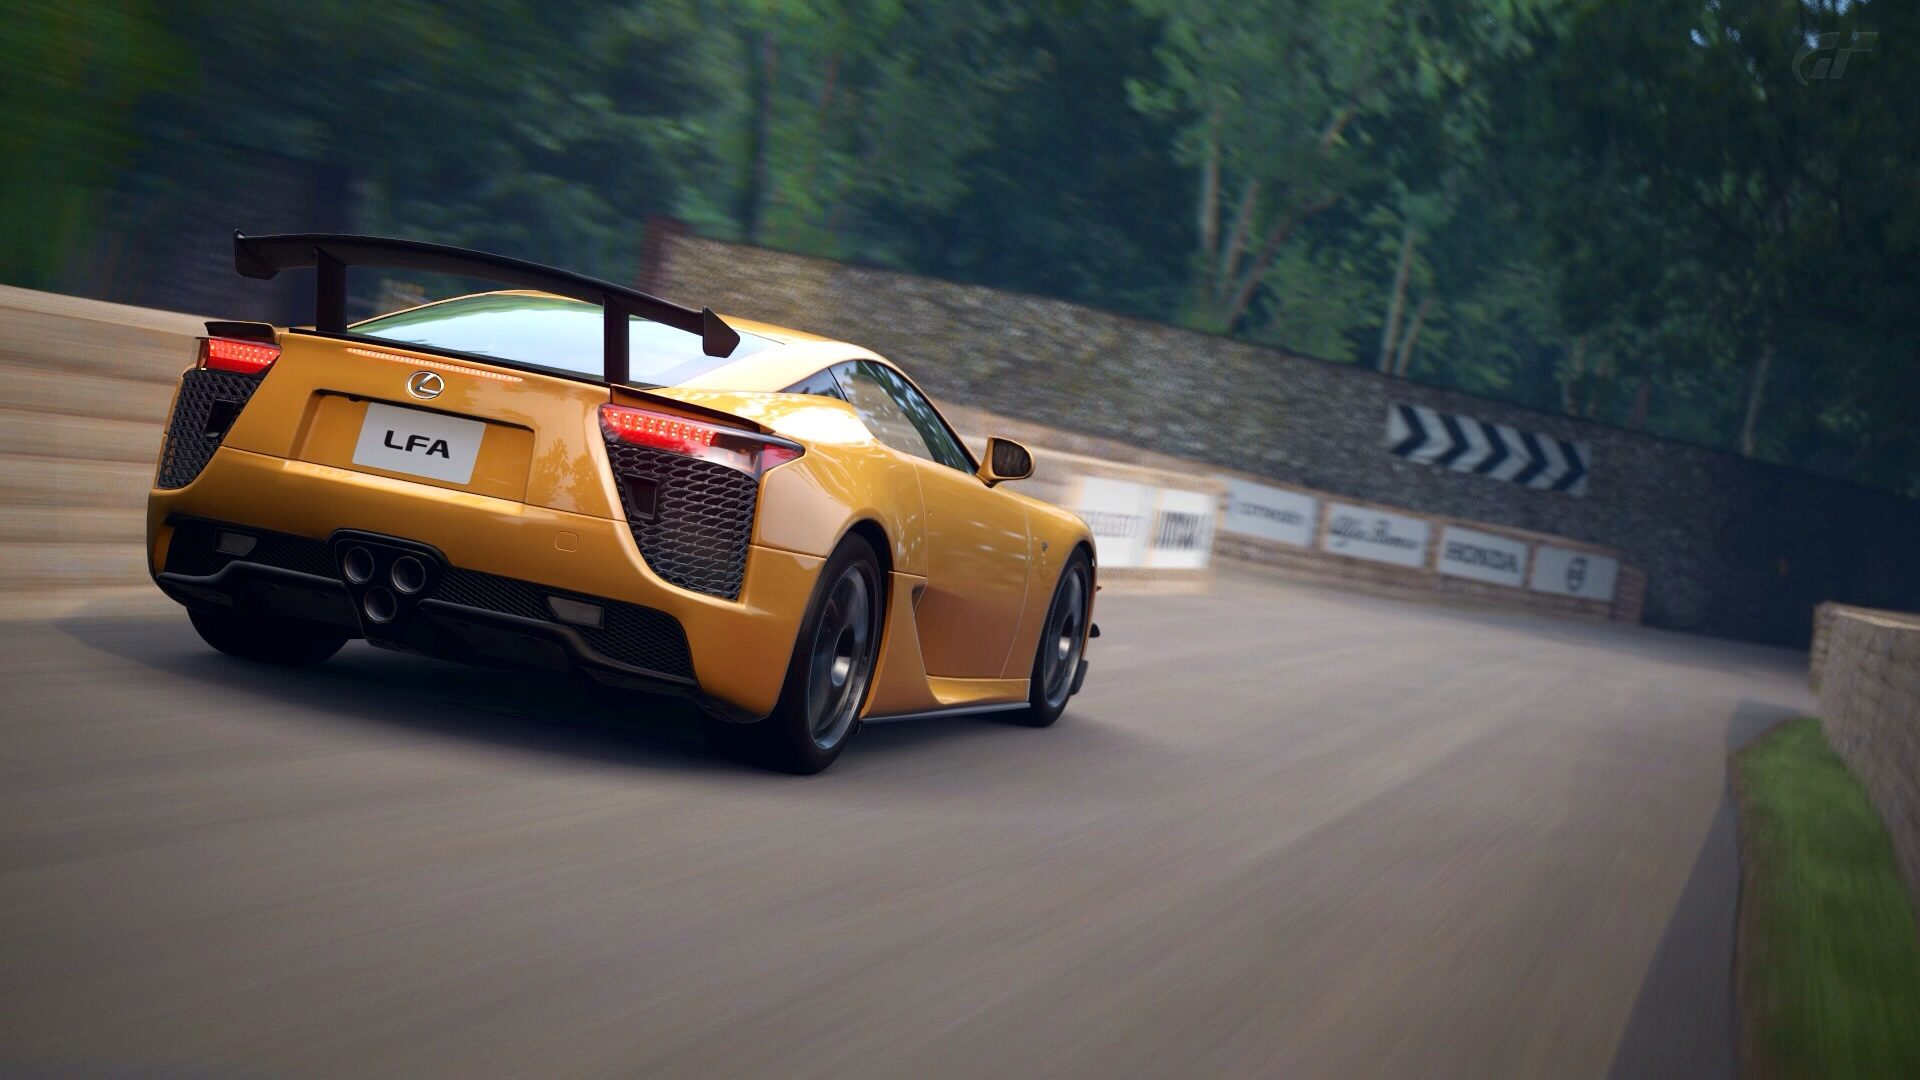 LFA Nurburgring Ed. Goodwood (1).jpg